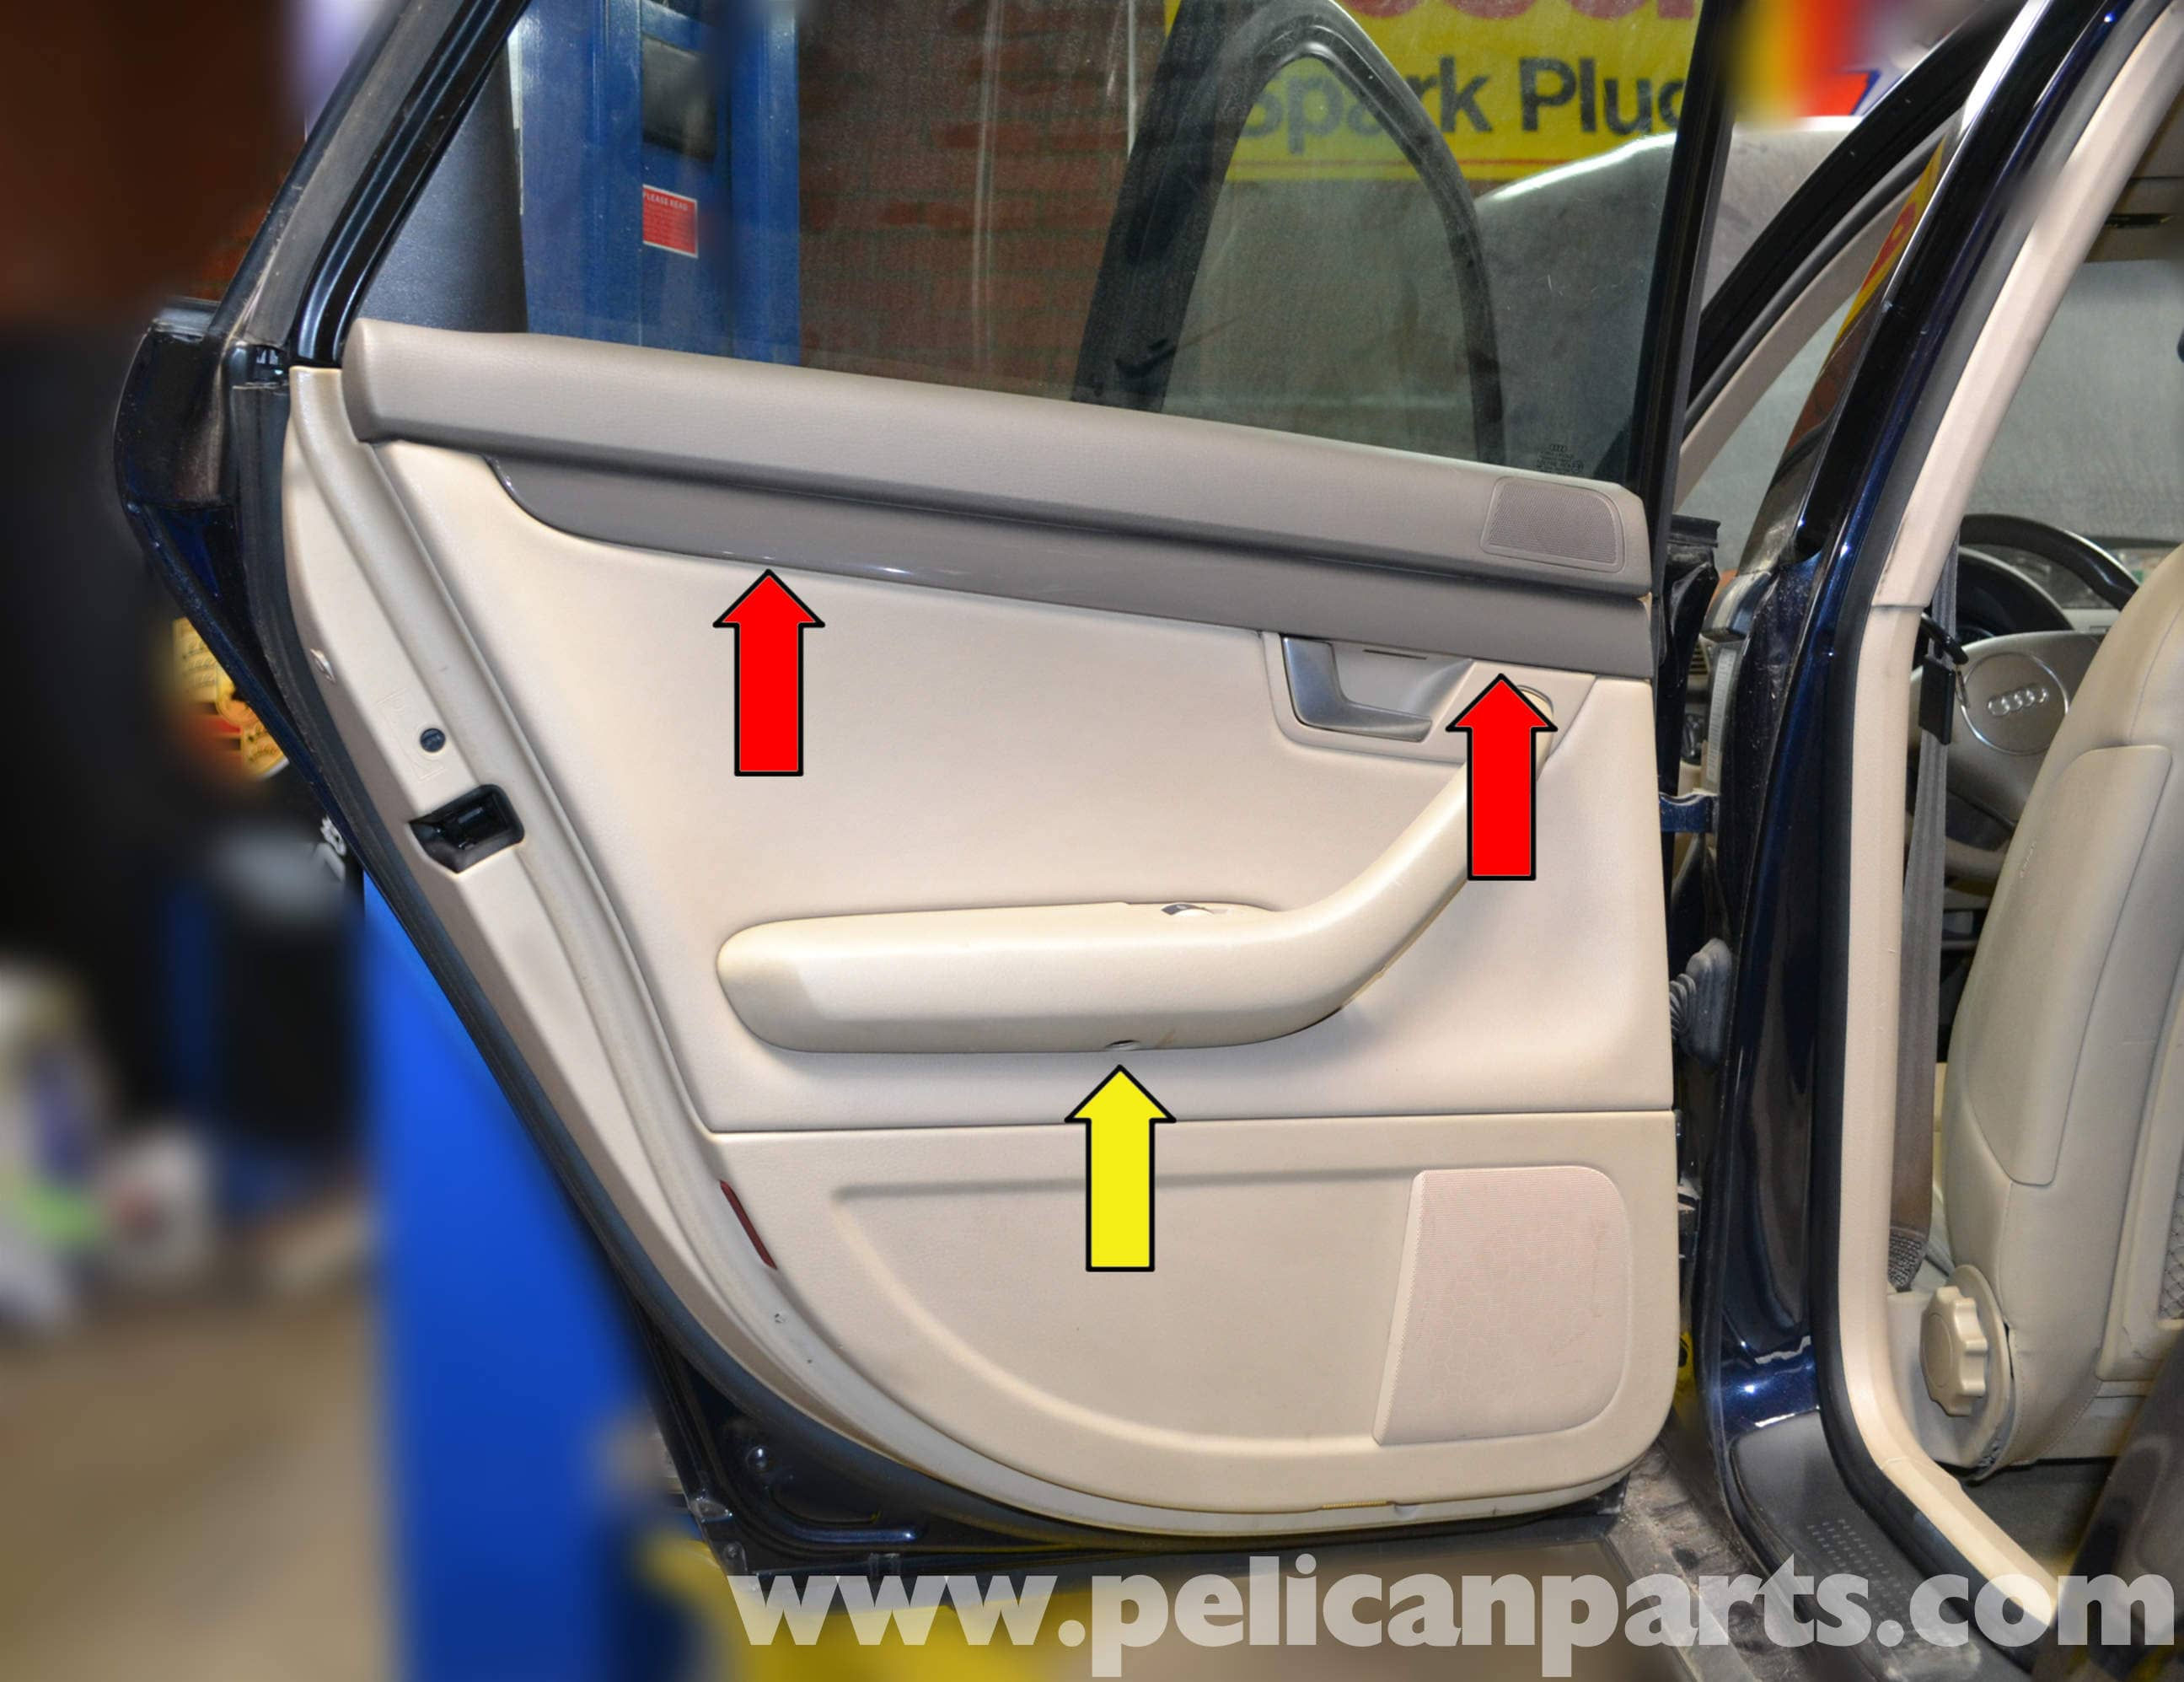 Large Image | Extra-Large Image & Audi A4 B6 Rear Door Panel Removal (2002-2008) | Pelican Parts DIY ...